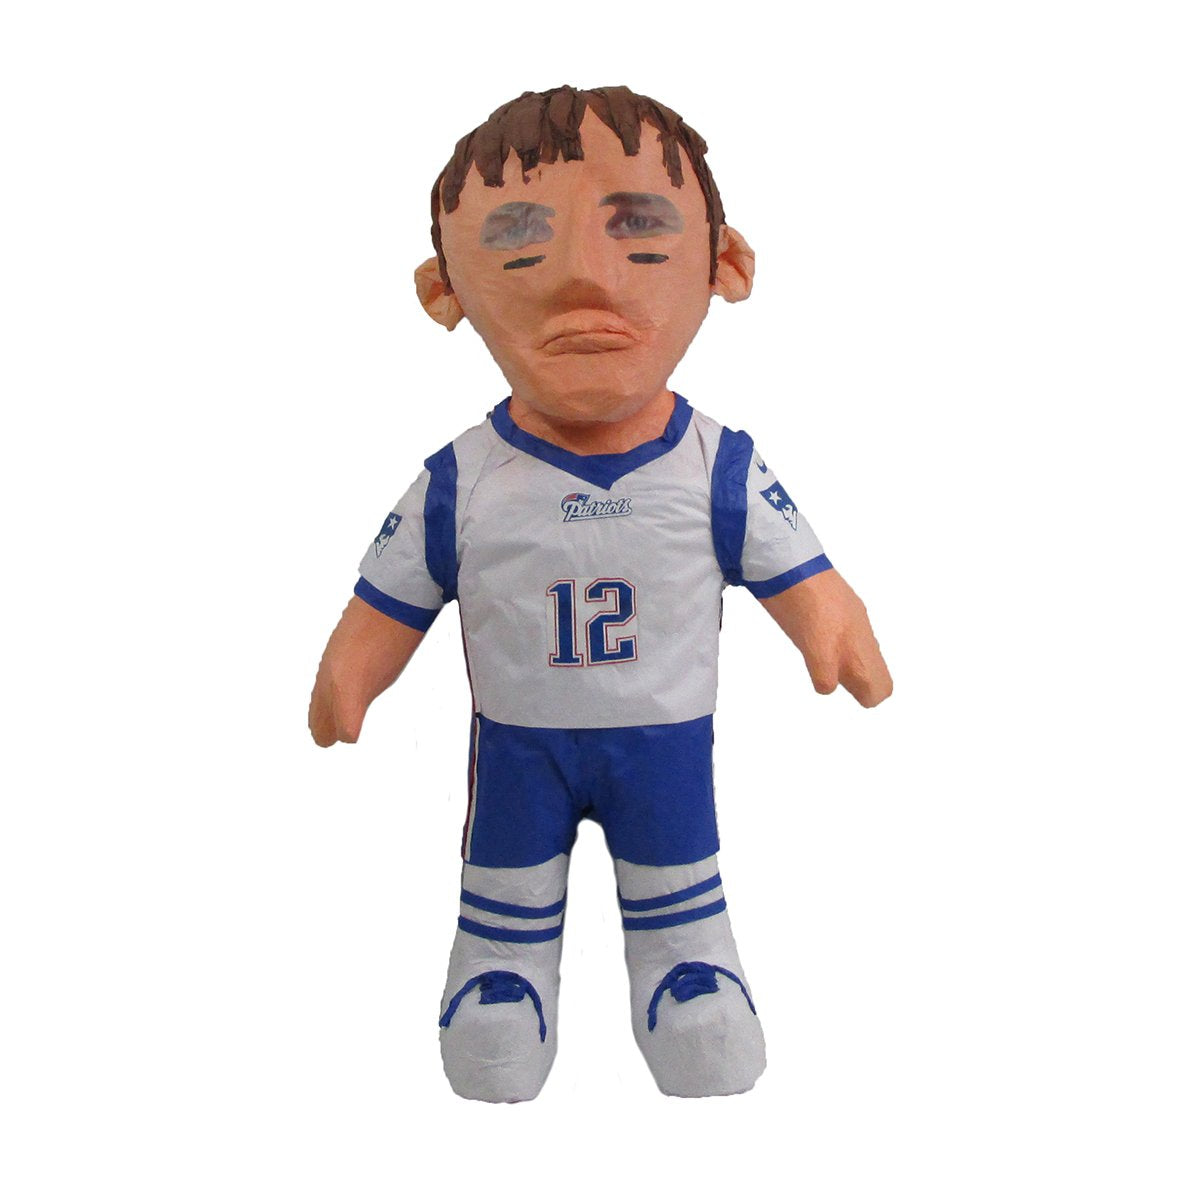 CUSTOM FOOTBALL PLAYER PINATA